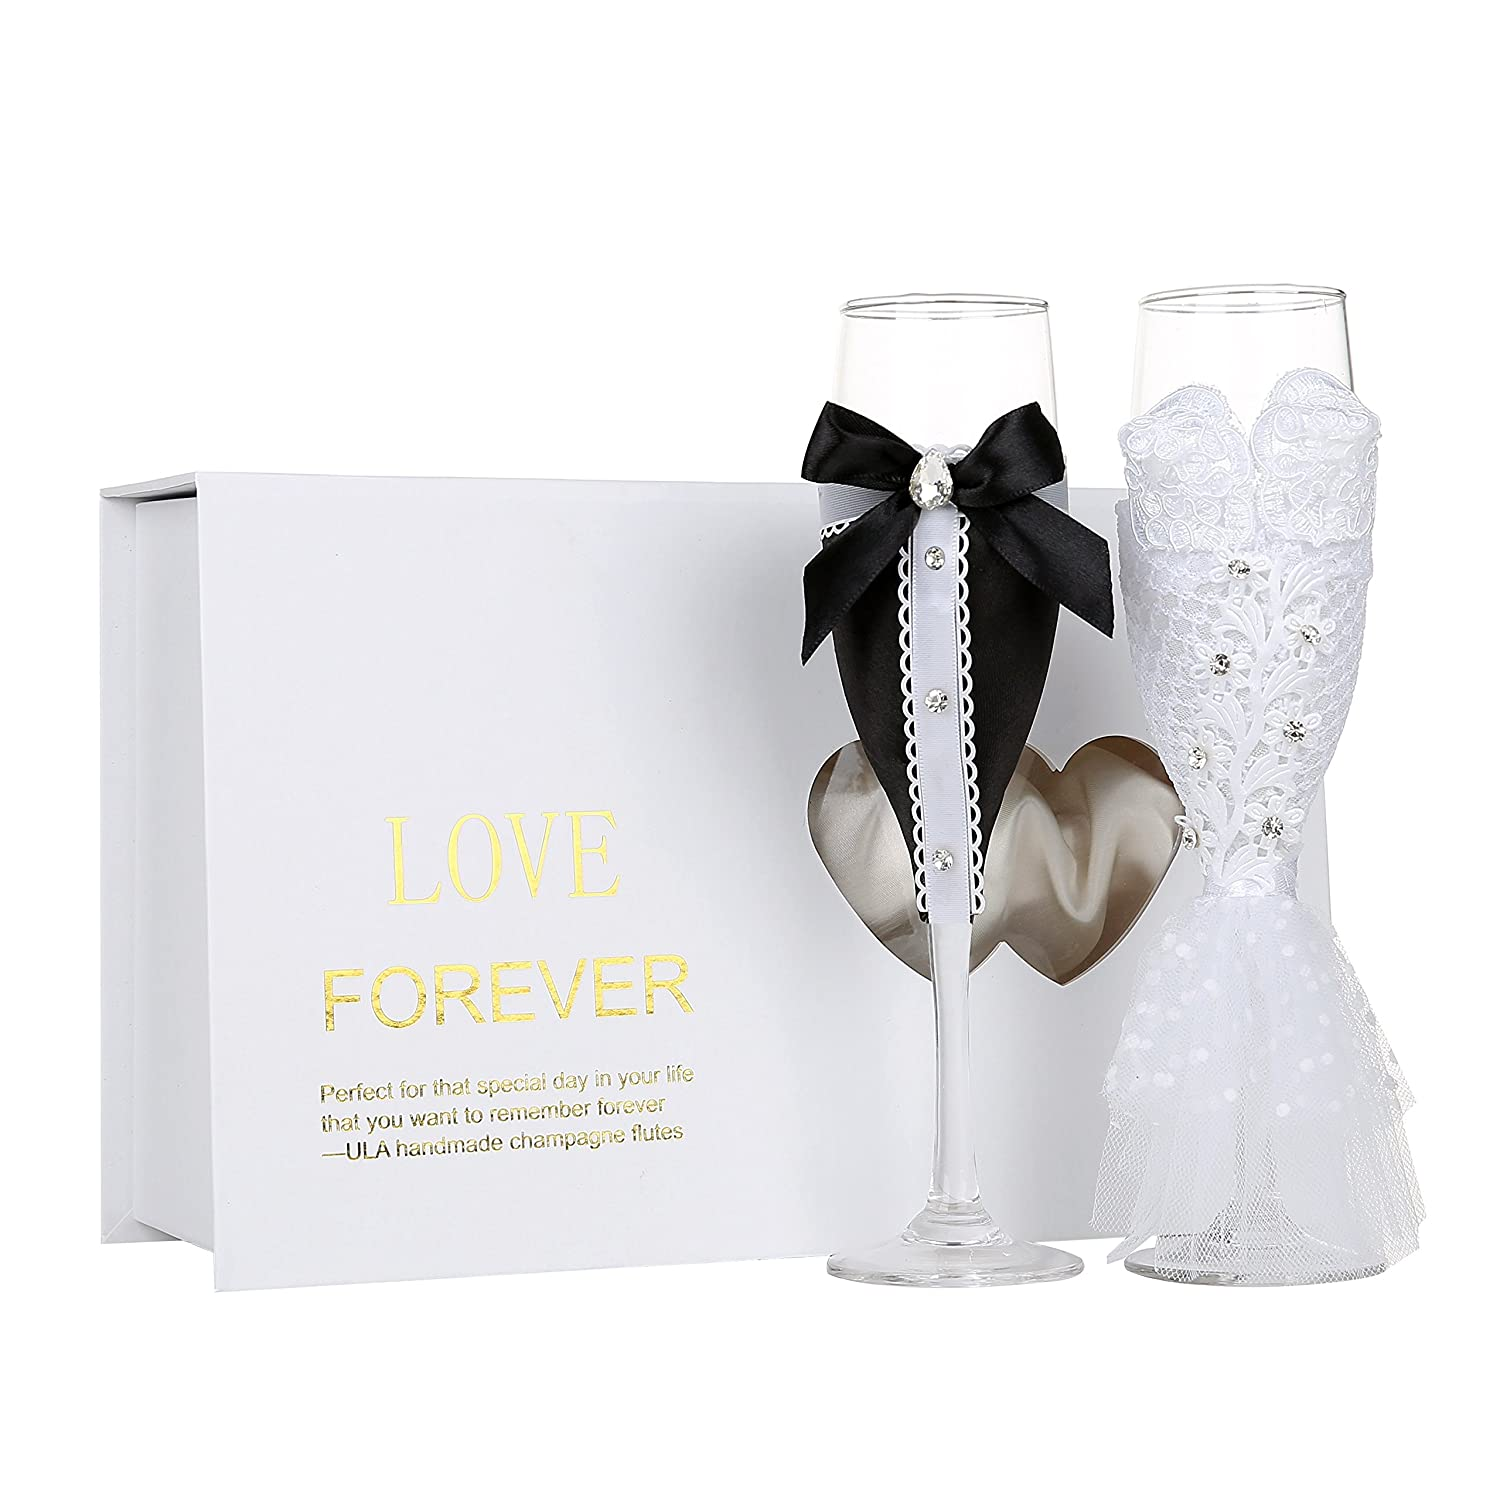 97ab04b4fc5c Personalized Wedding Dress Wine Glasses-ULA Handmade Bride and Groom  Champagne Flutes for Toasting